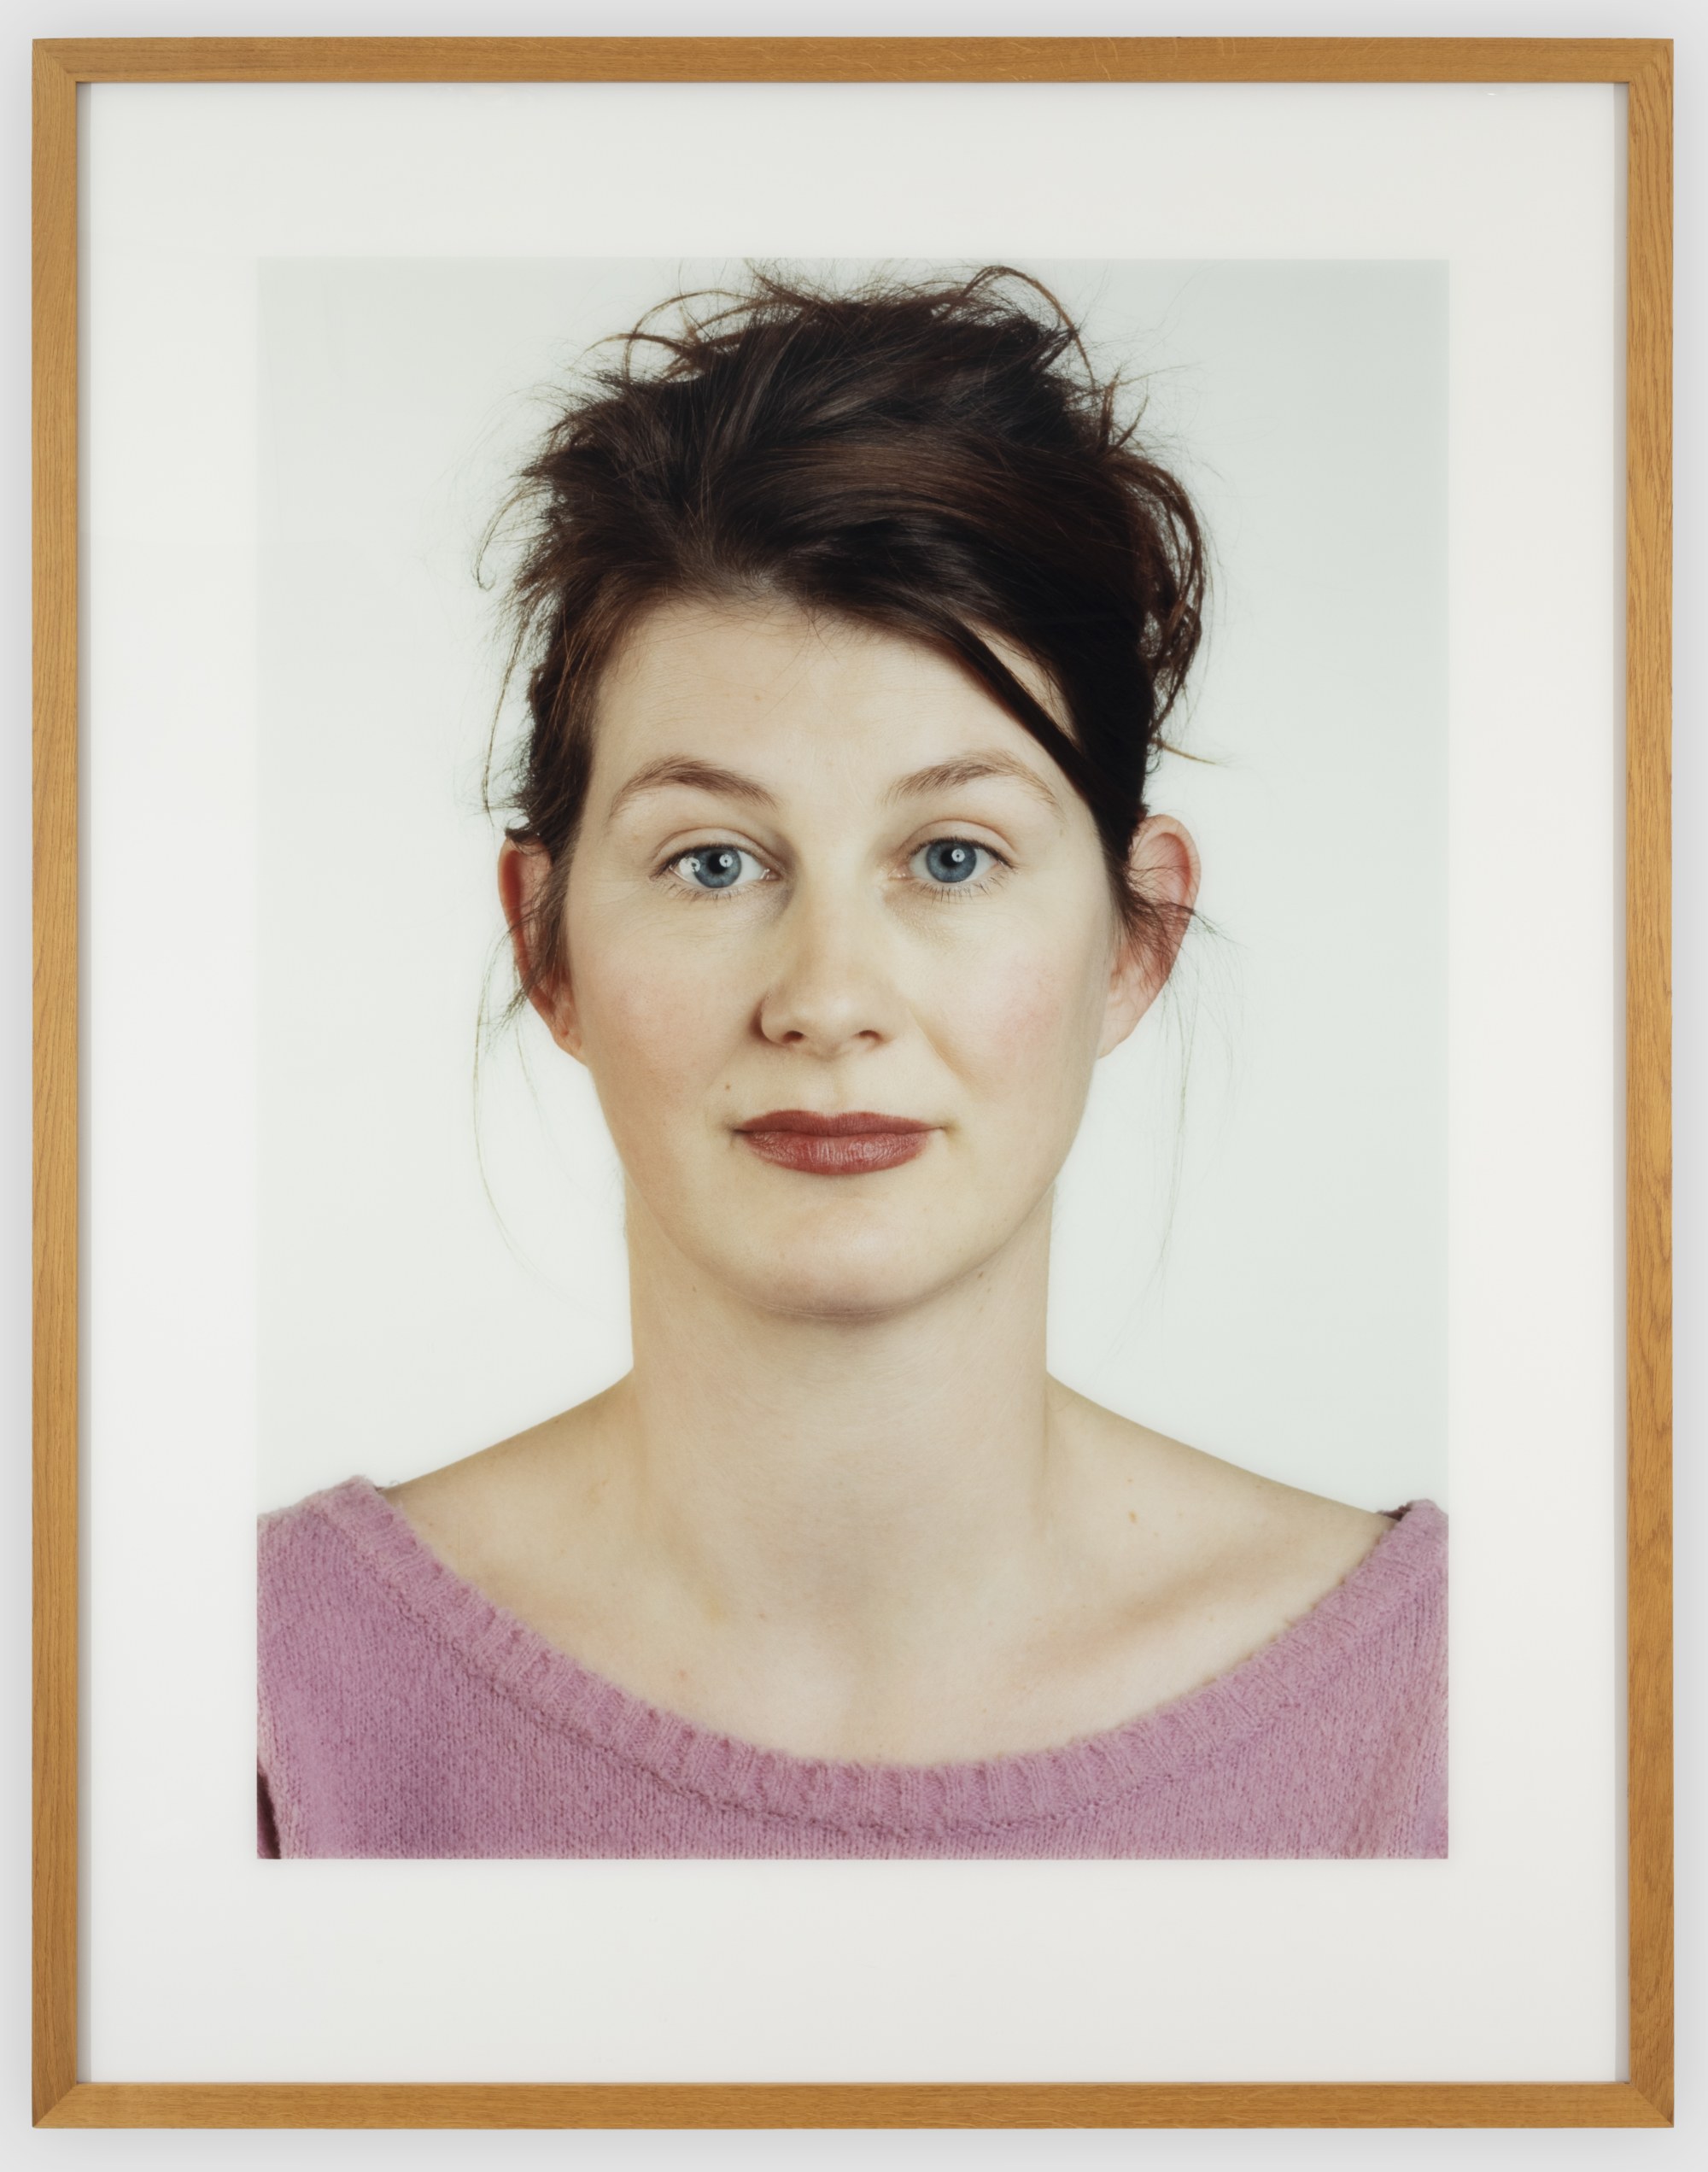 With this portraits, Thomas Ruff undermines the classical method of portrait photography.